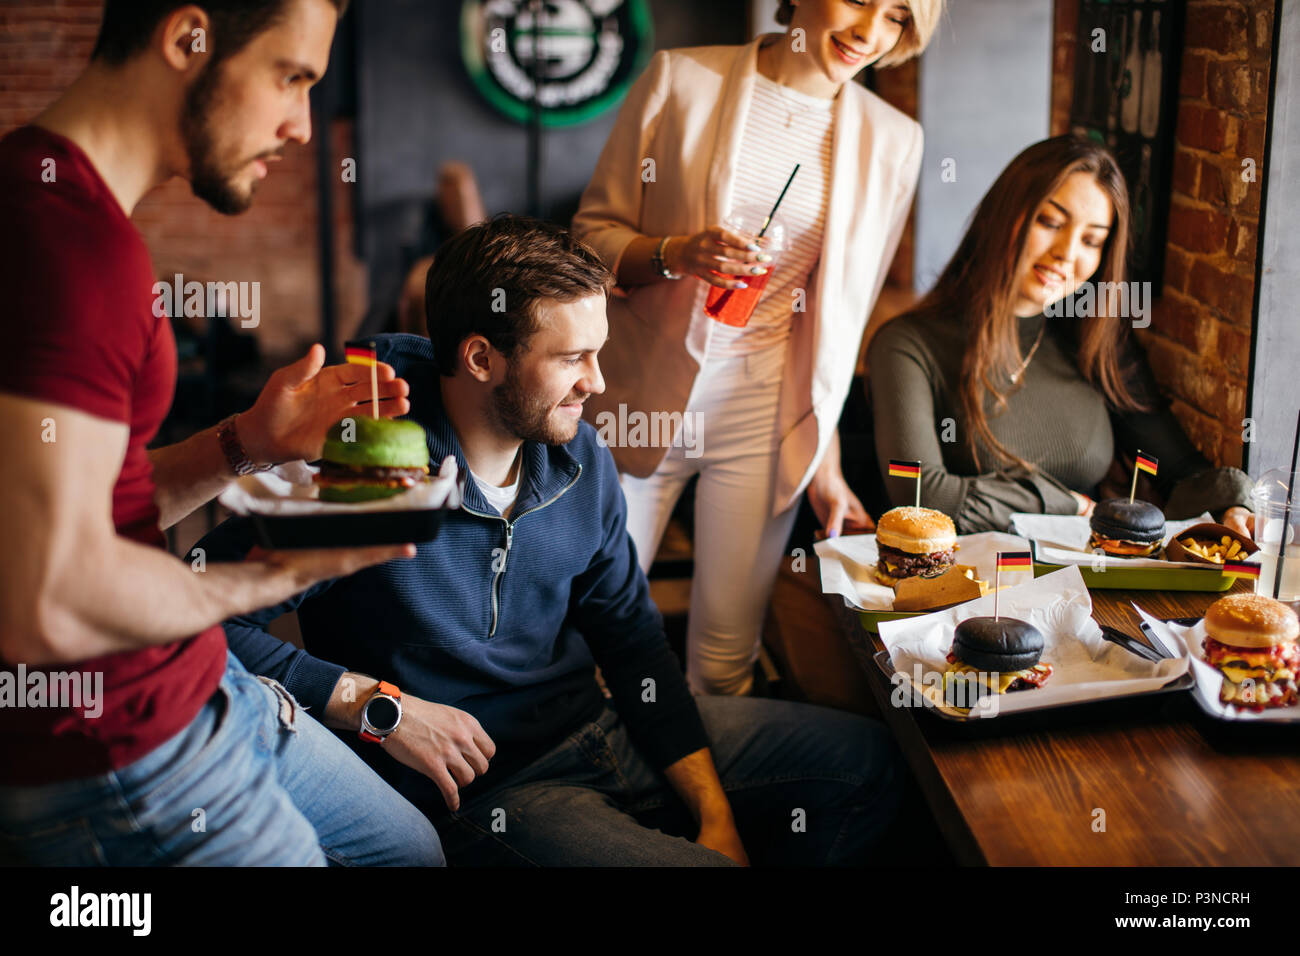 Polite young waiter bringing ordered burgers to guests at restaurant Stock Photo